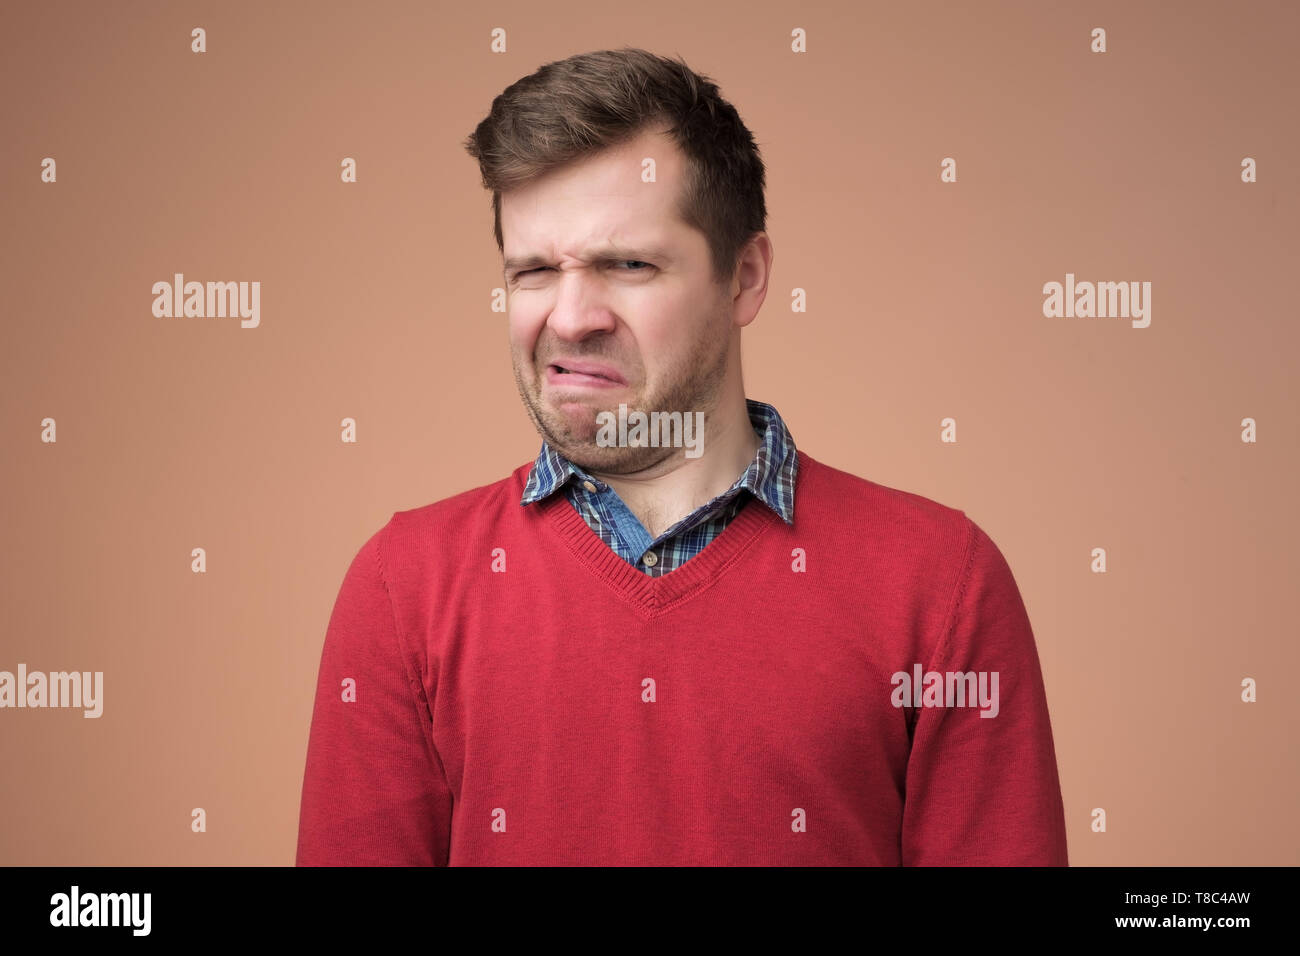 mature man in red sweater looking with disbelief expression - Stock Image